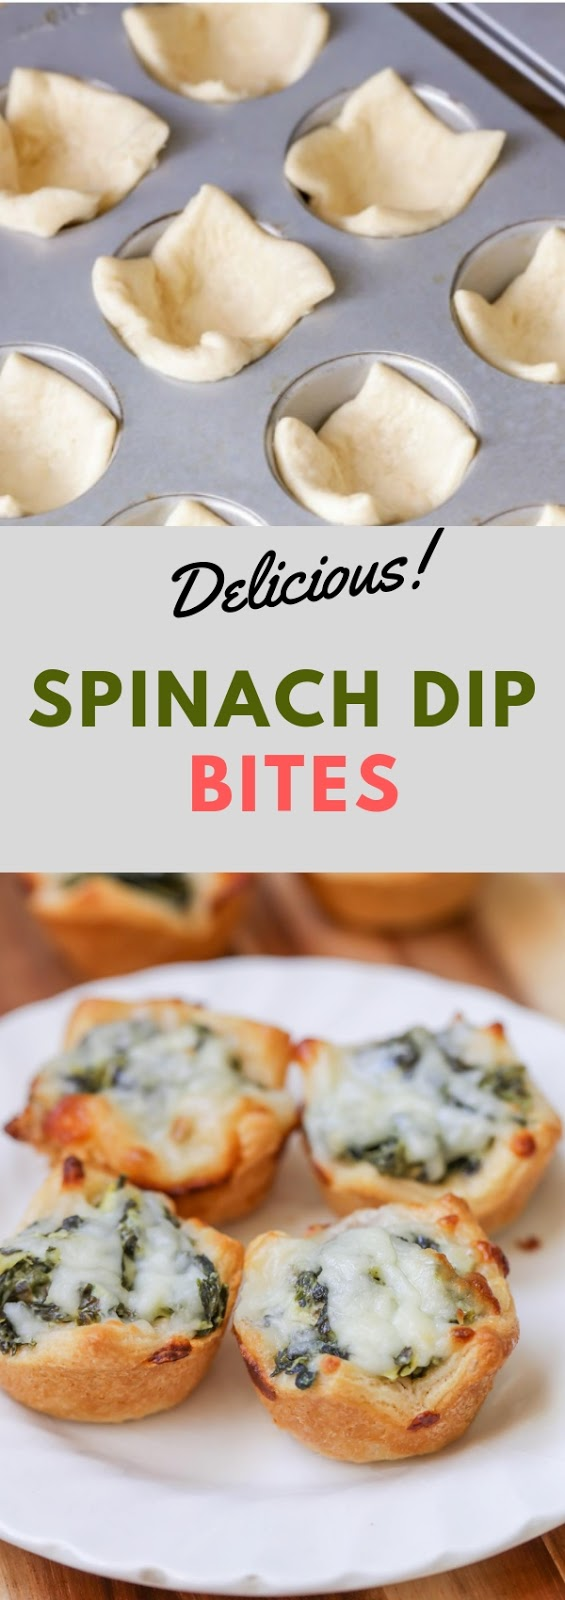 Spinach Dip Bites #appetizer #spinach #dip #bites